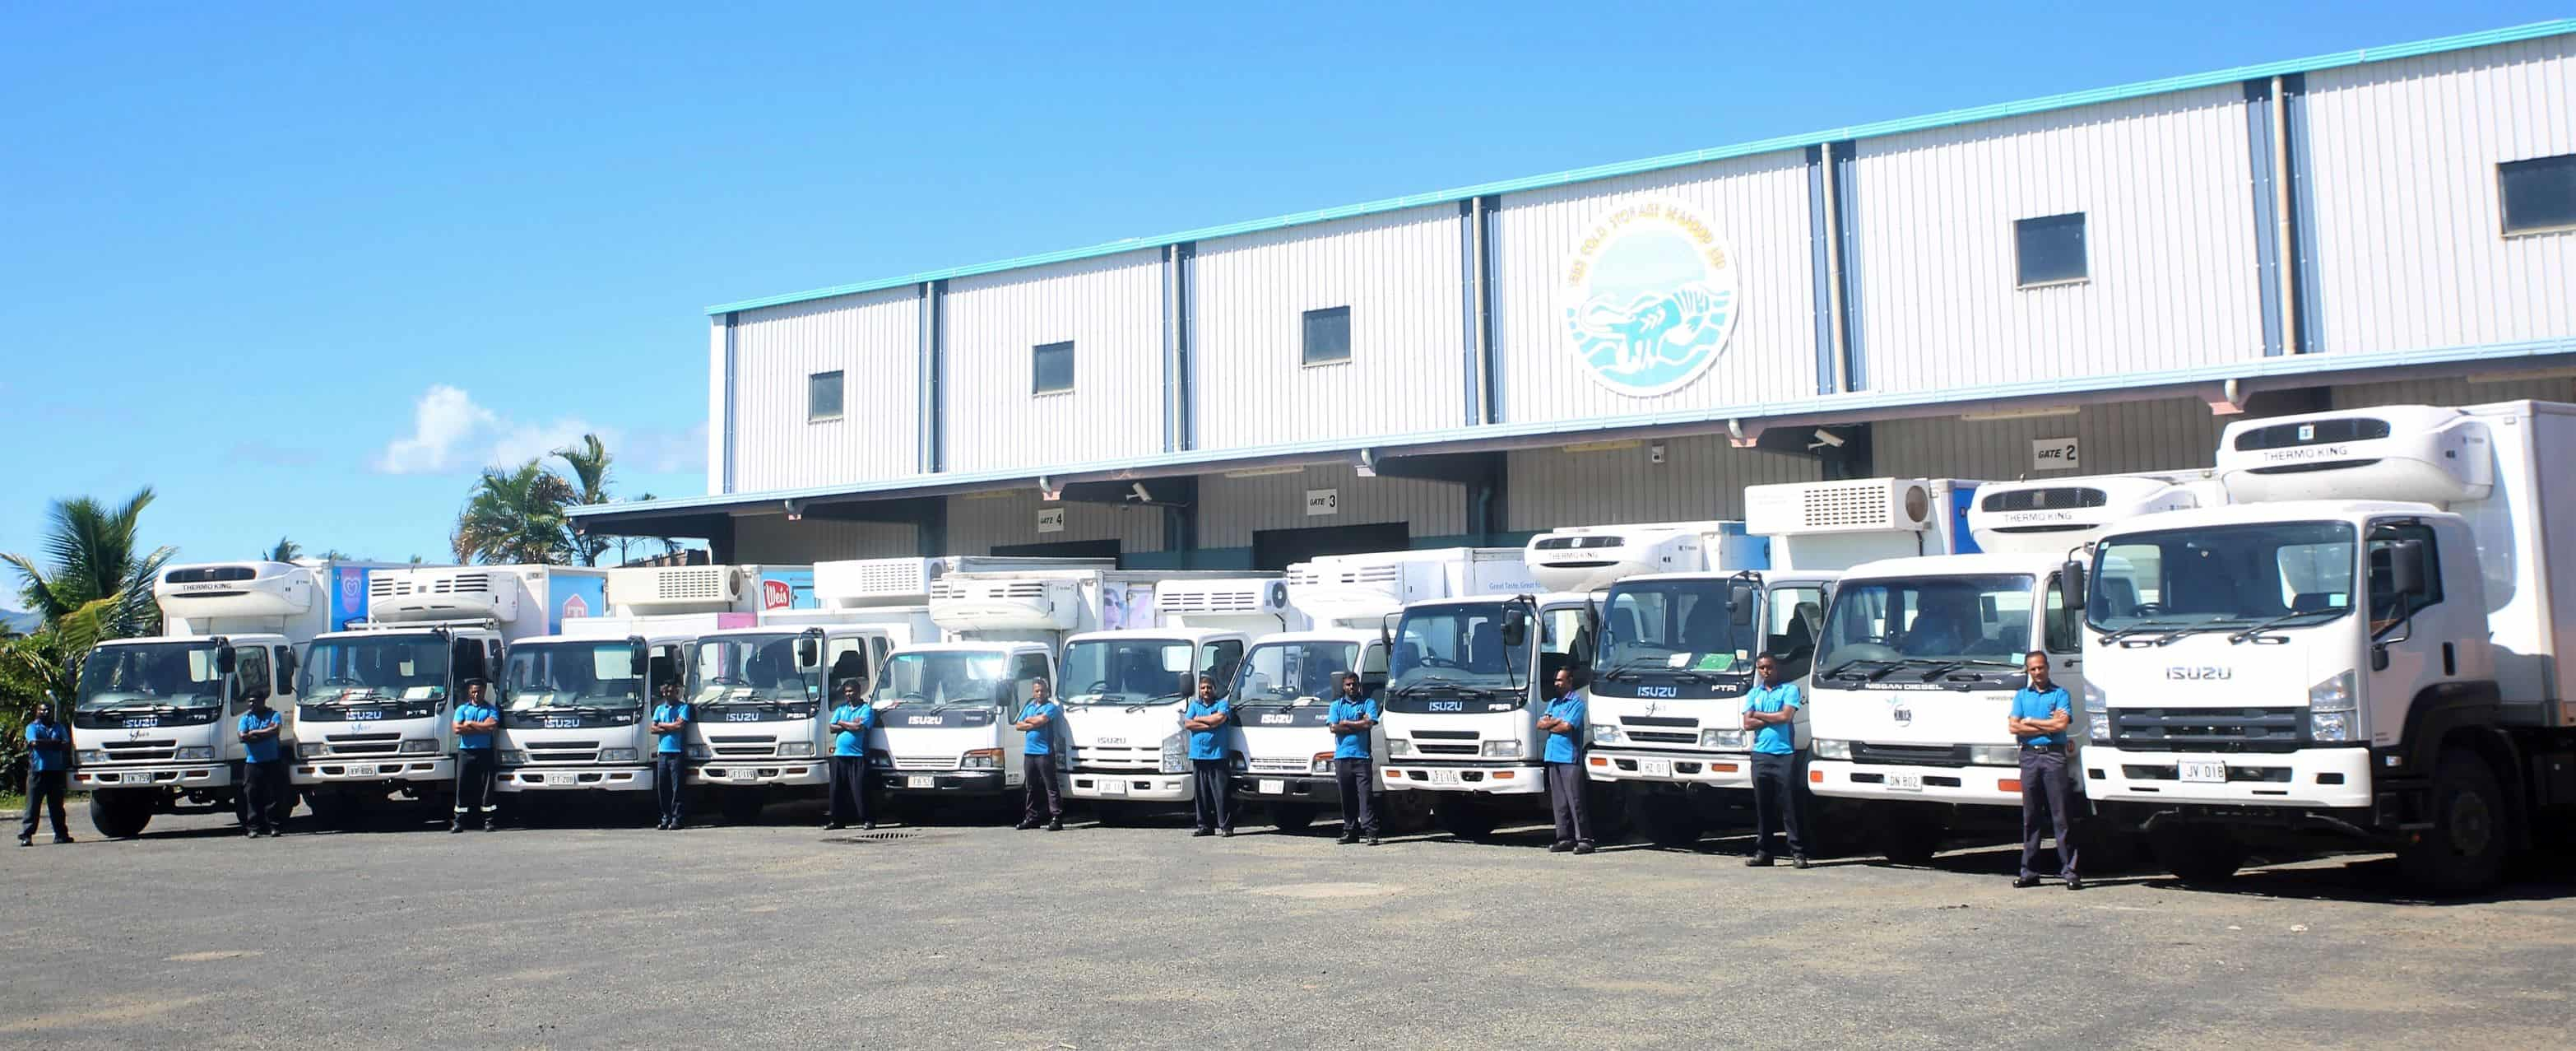 Yee's Warehouse & Delivery Fleet